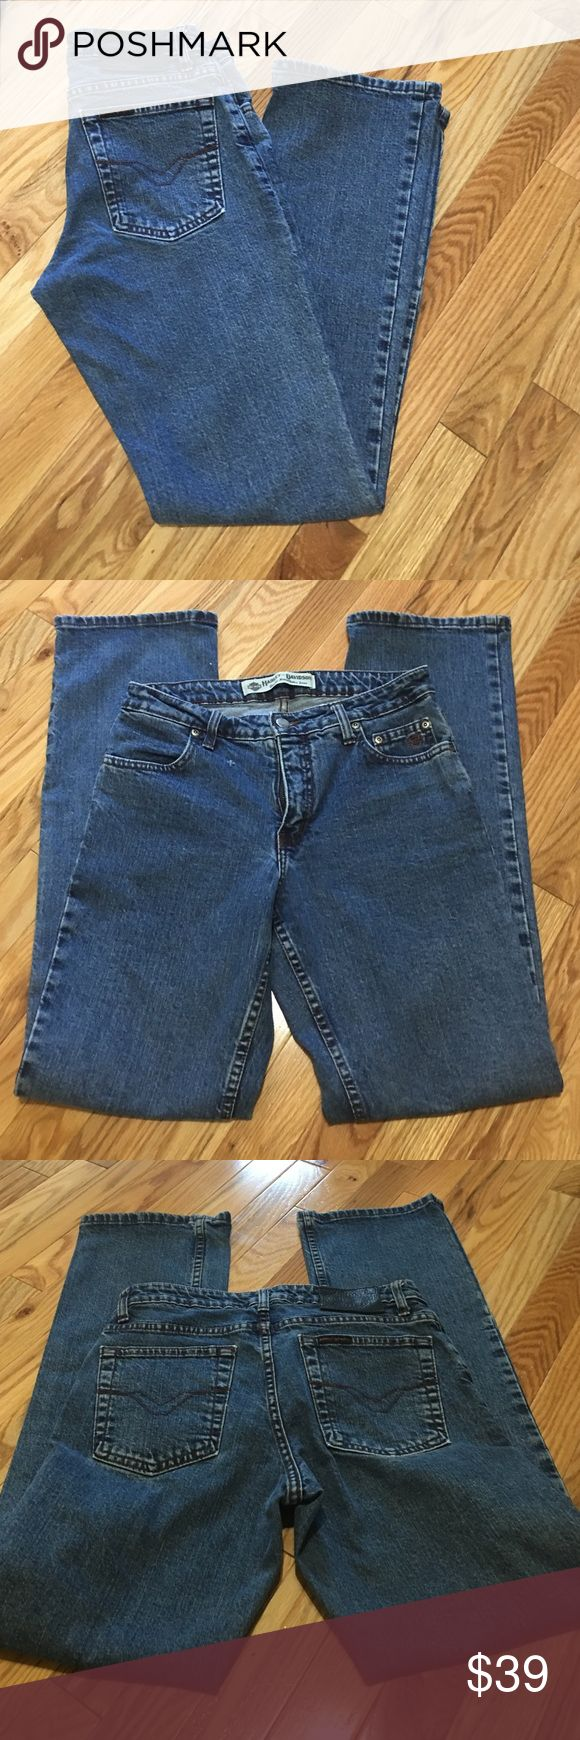 Harley Davidson jeans Harley Davidson bootcut jeans size 6 inseam 31. EUC No rips, stains, holes or cuff fraying. Has one small snag on upper left side by pocket as seen in pic # 2 Harley name patch on back waist band and pocket. Harley logo embroidered on left coin pocket. Harley-Davidson Jeans Boot Cut